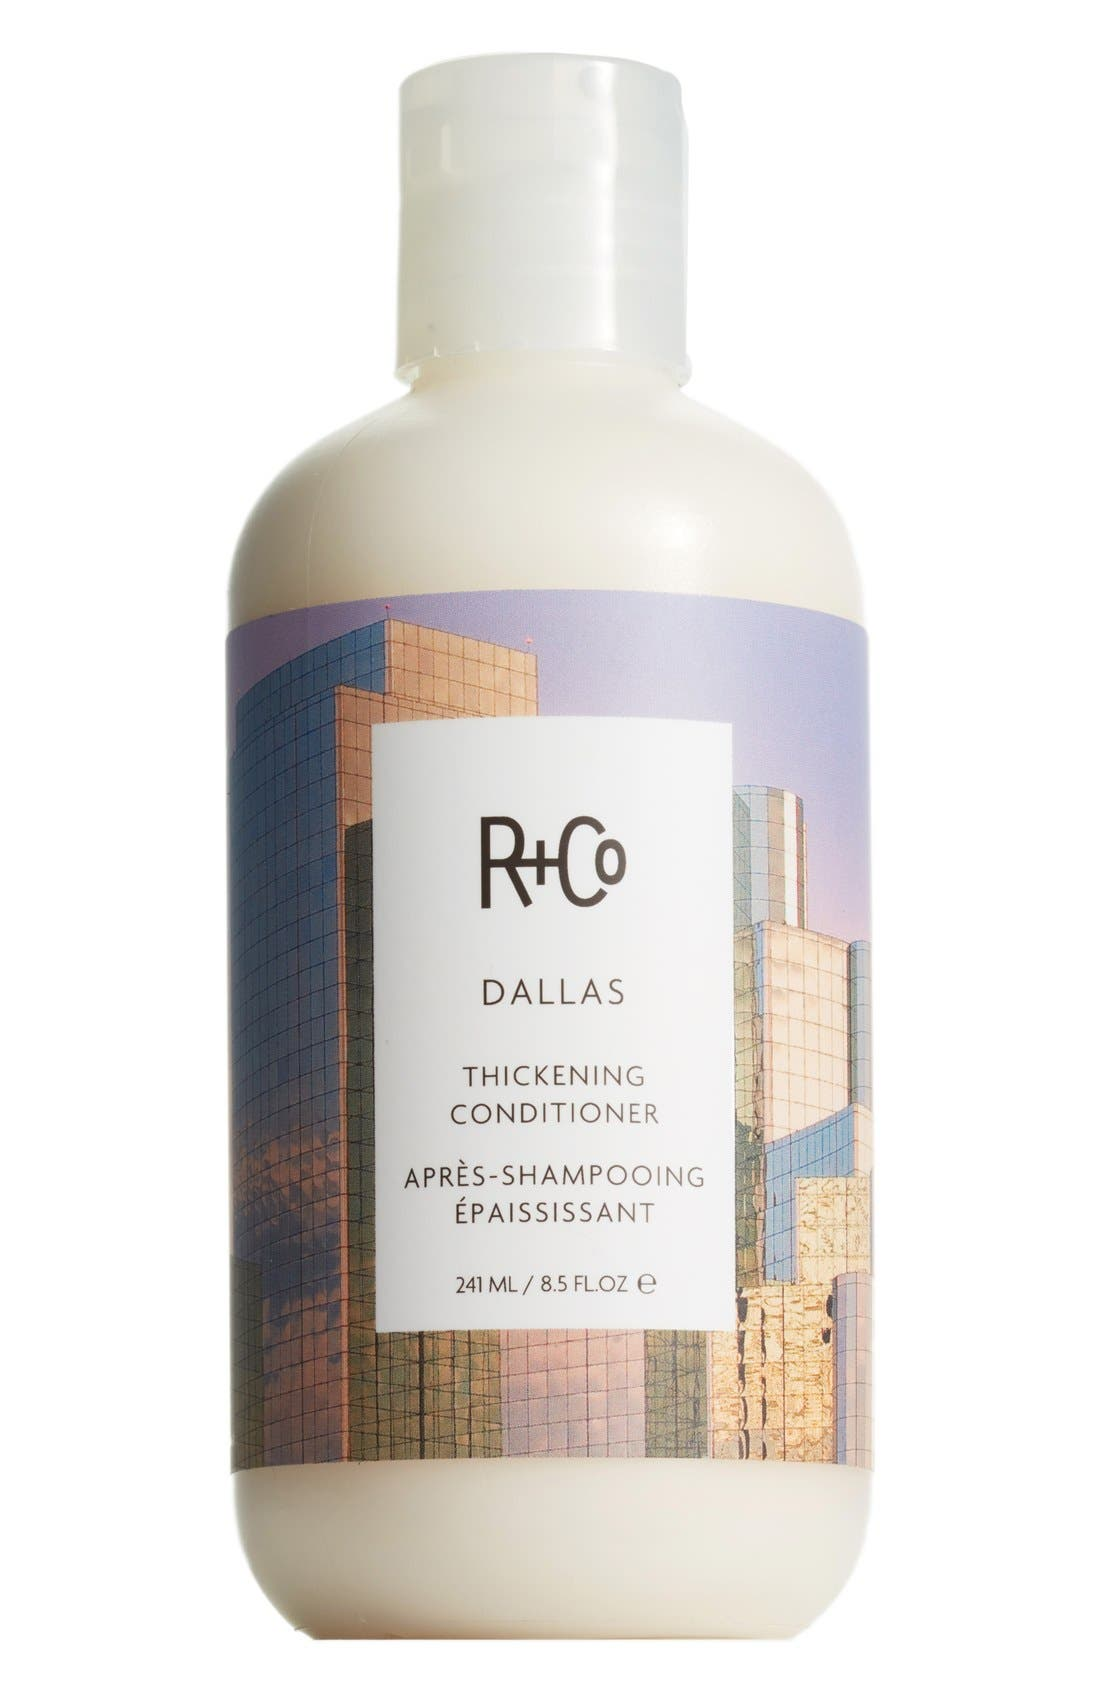 SPACE.NK.apothecary R+Co Dallas Thickening Conditioner,                             Main thumbnail 1, color,                             NO COLOR